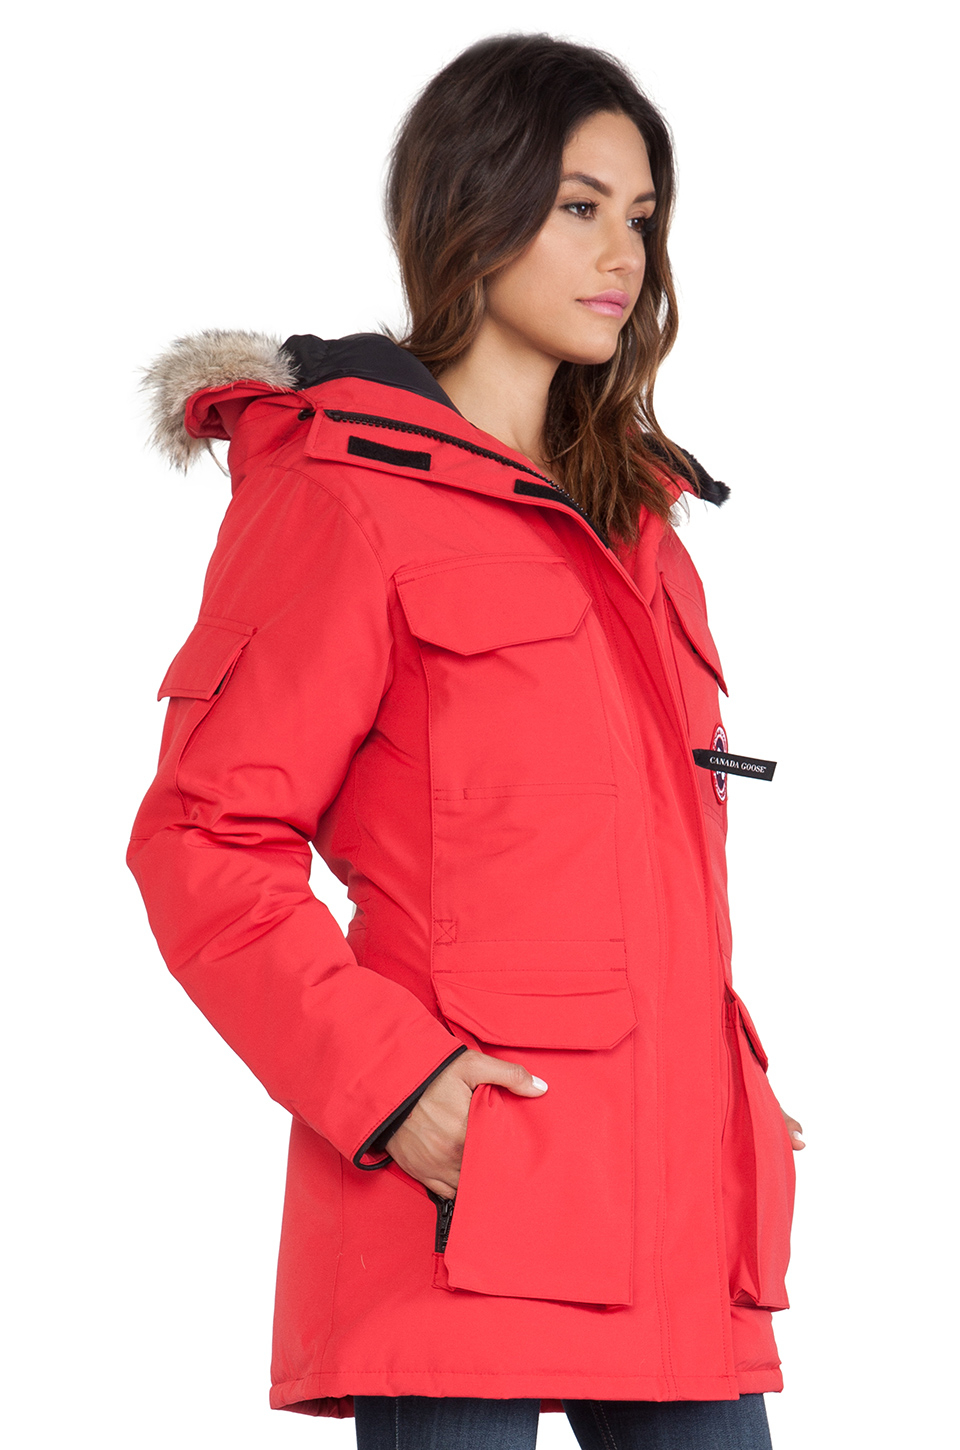 Canada Goose kensington parka outlet official - Canada goose Expedition Parka With Coyote Fur Trim in Red | Lyst